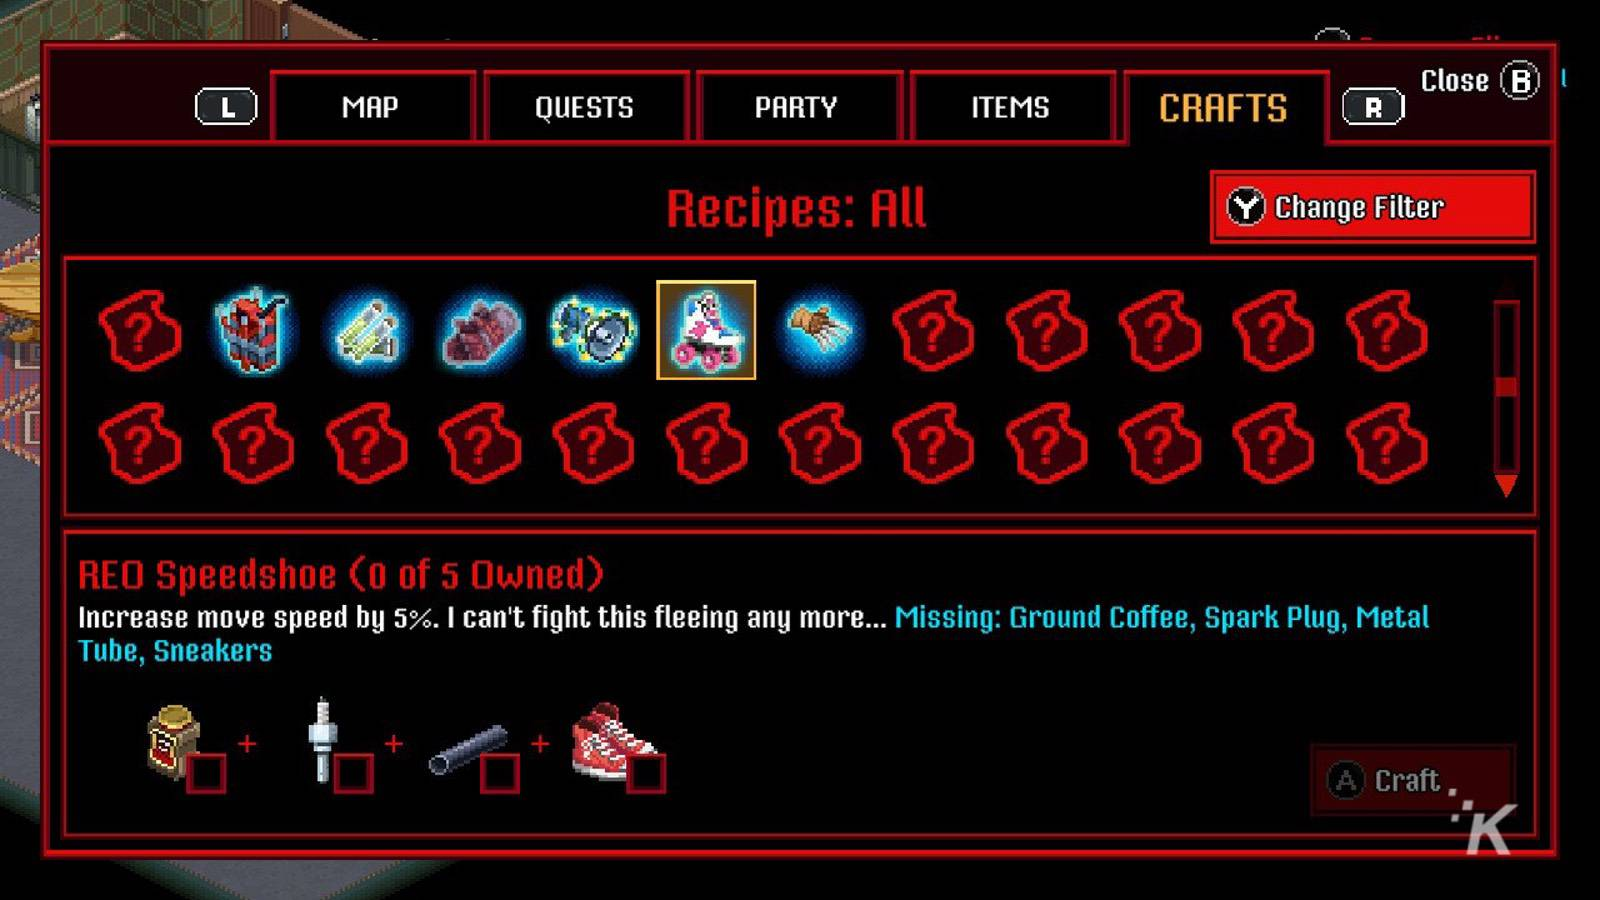 inventory management in the game